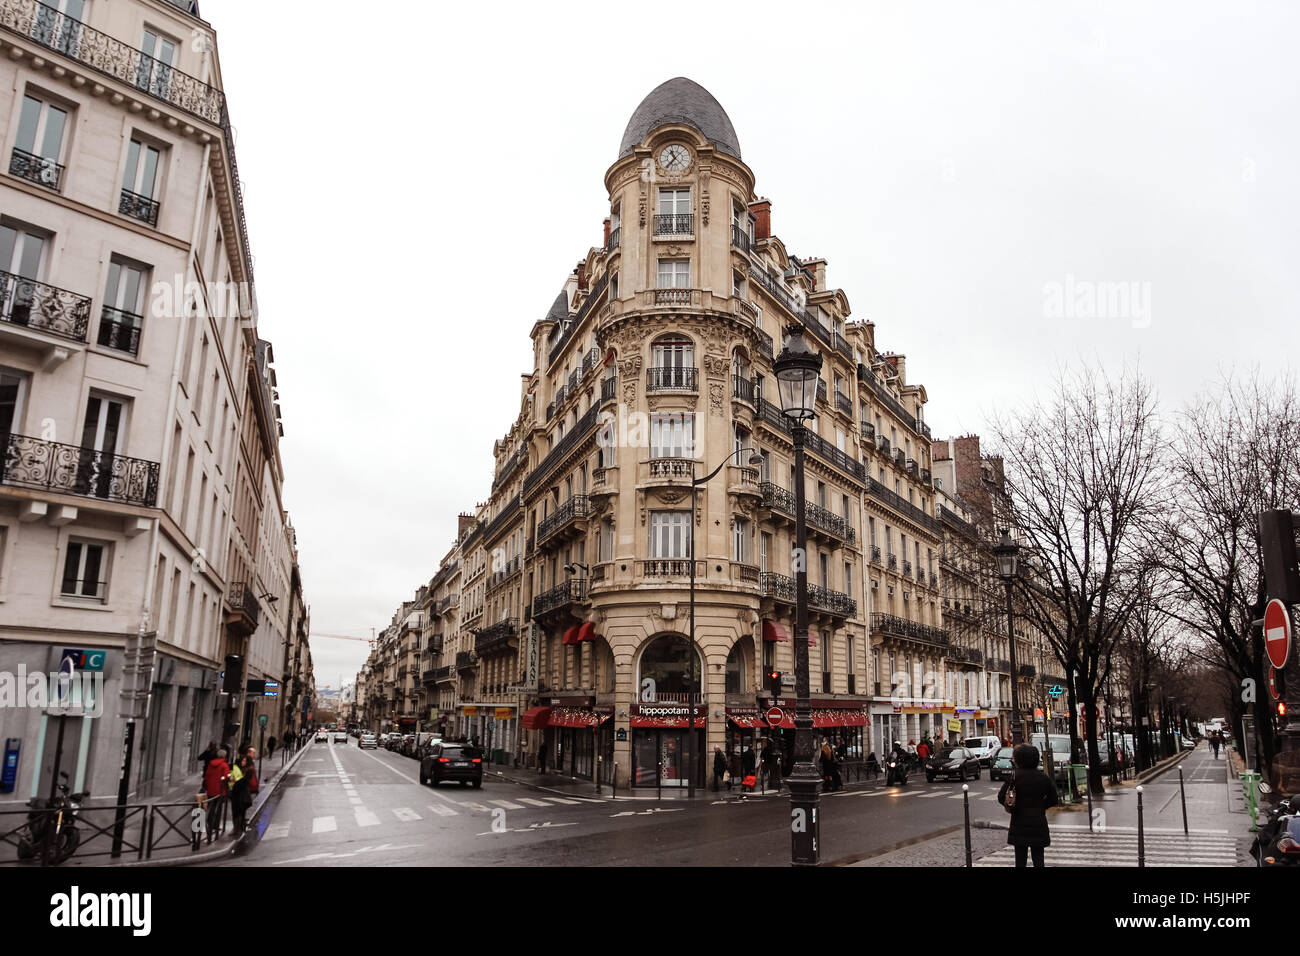 PARIS, FRANCE - DECEMBER 31, 2011: View from Place de Clichy in Paris on streets and buildings - Stock Image